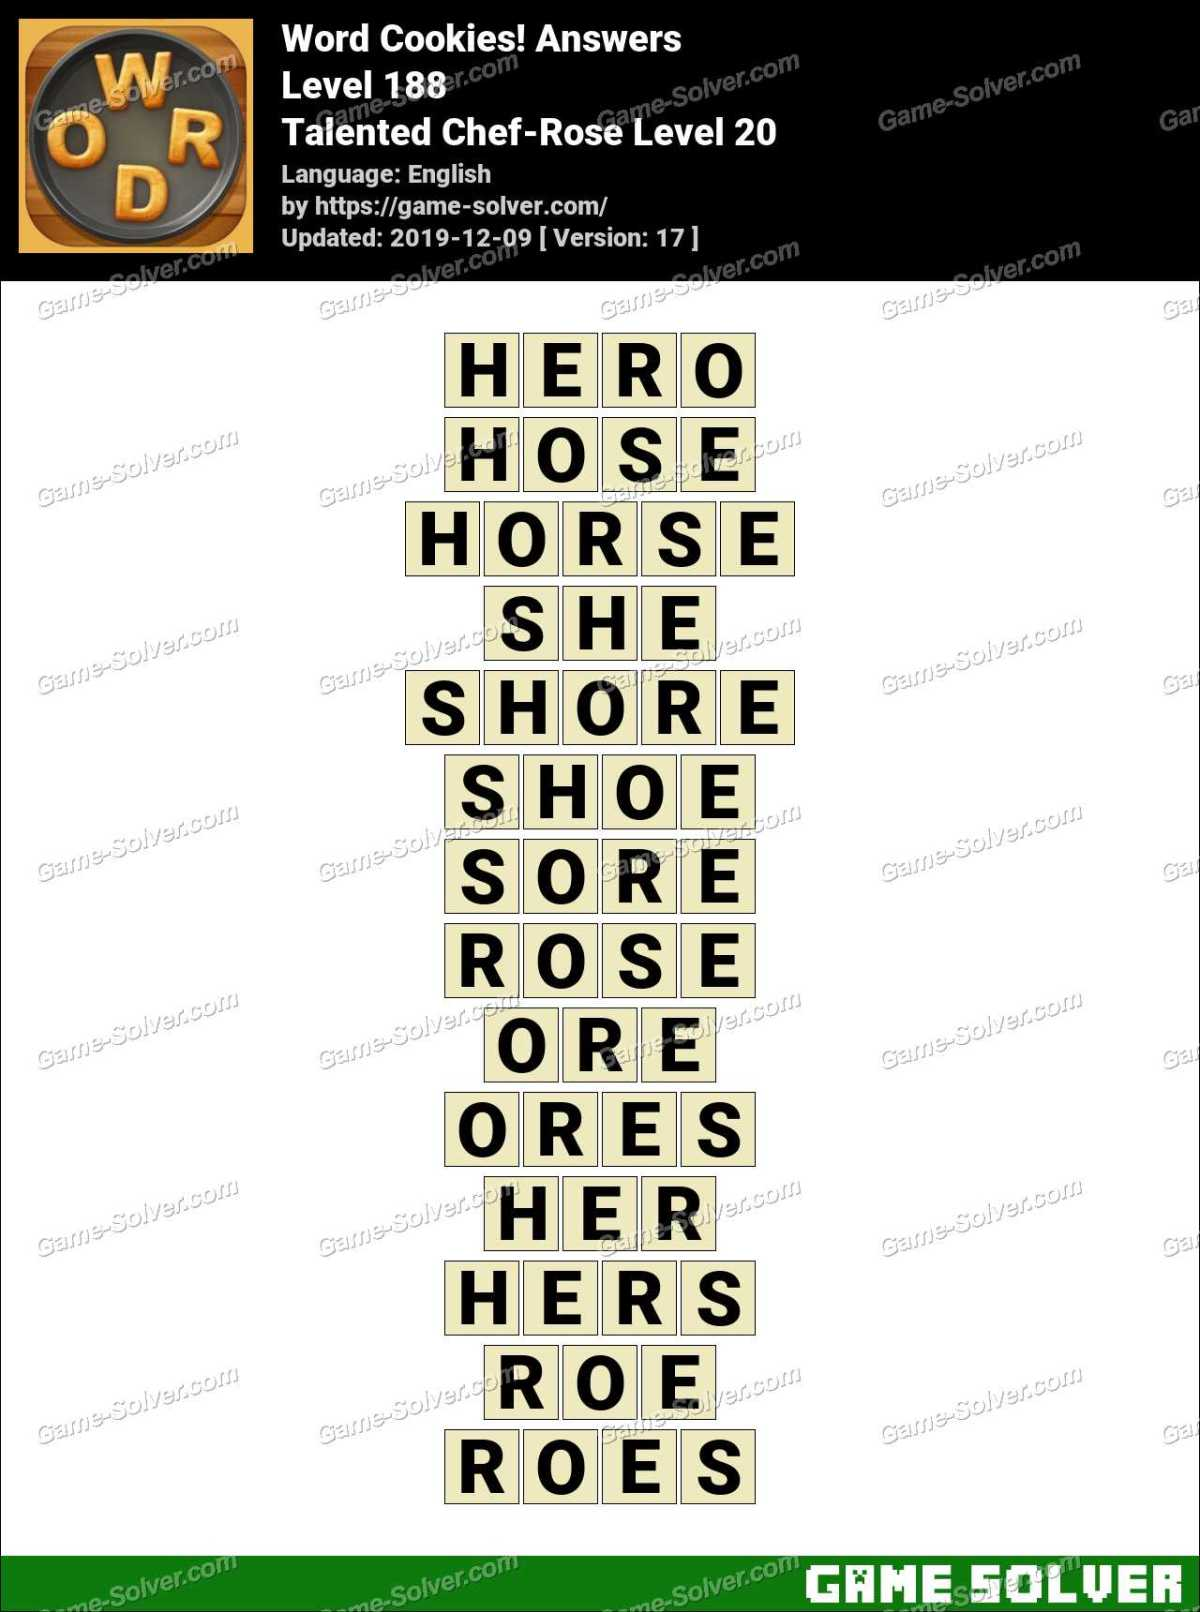 Word Cookies Talented Chef-Rose Level 20 Answers